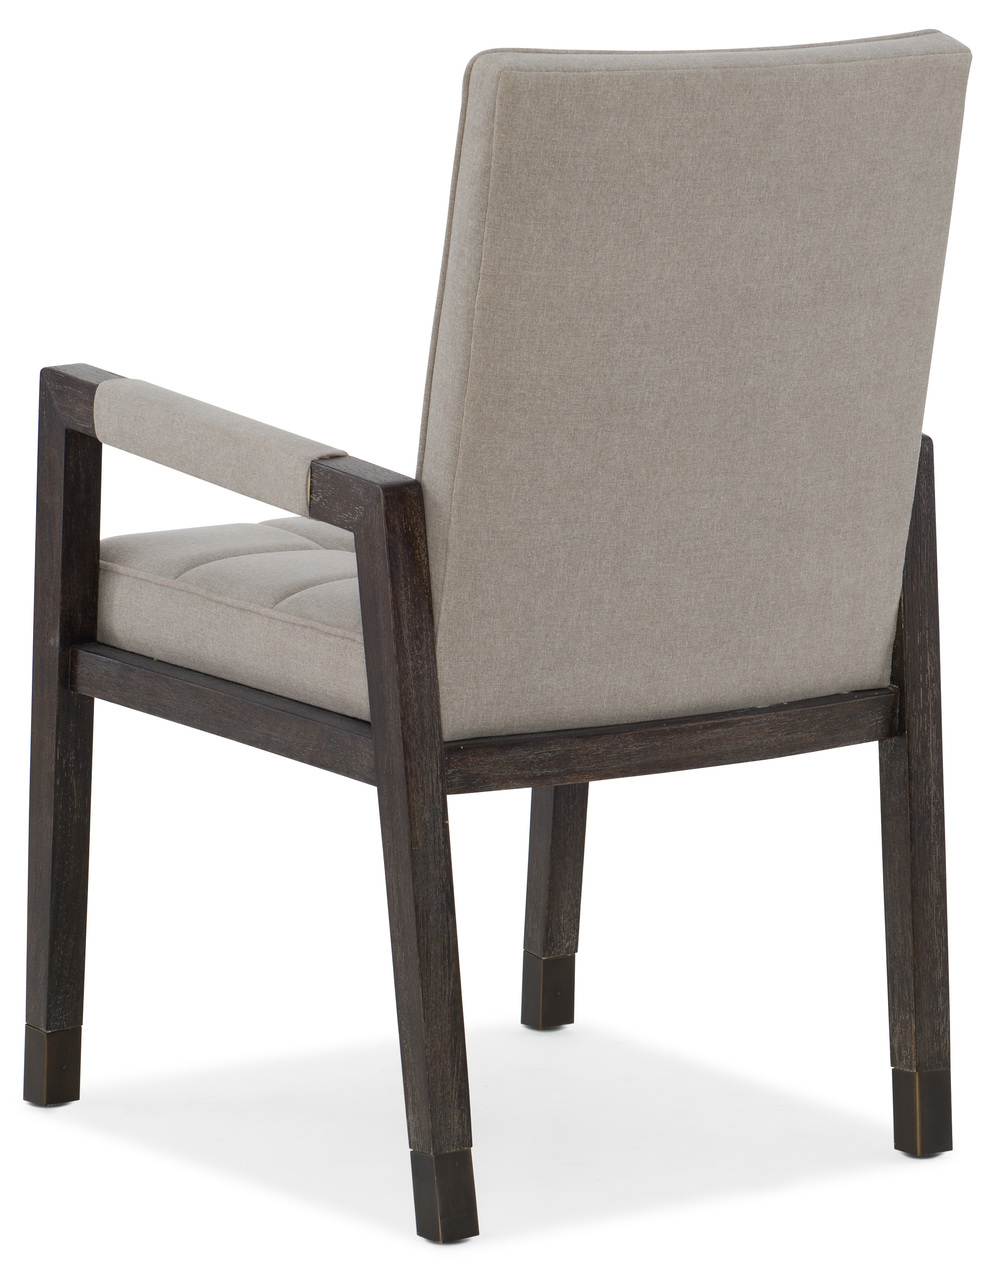 HOOKER FURNITURE CO - Cupertino Upholstered Arm Chair